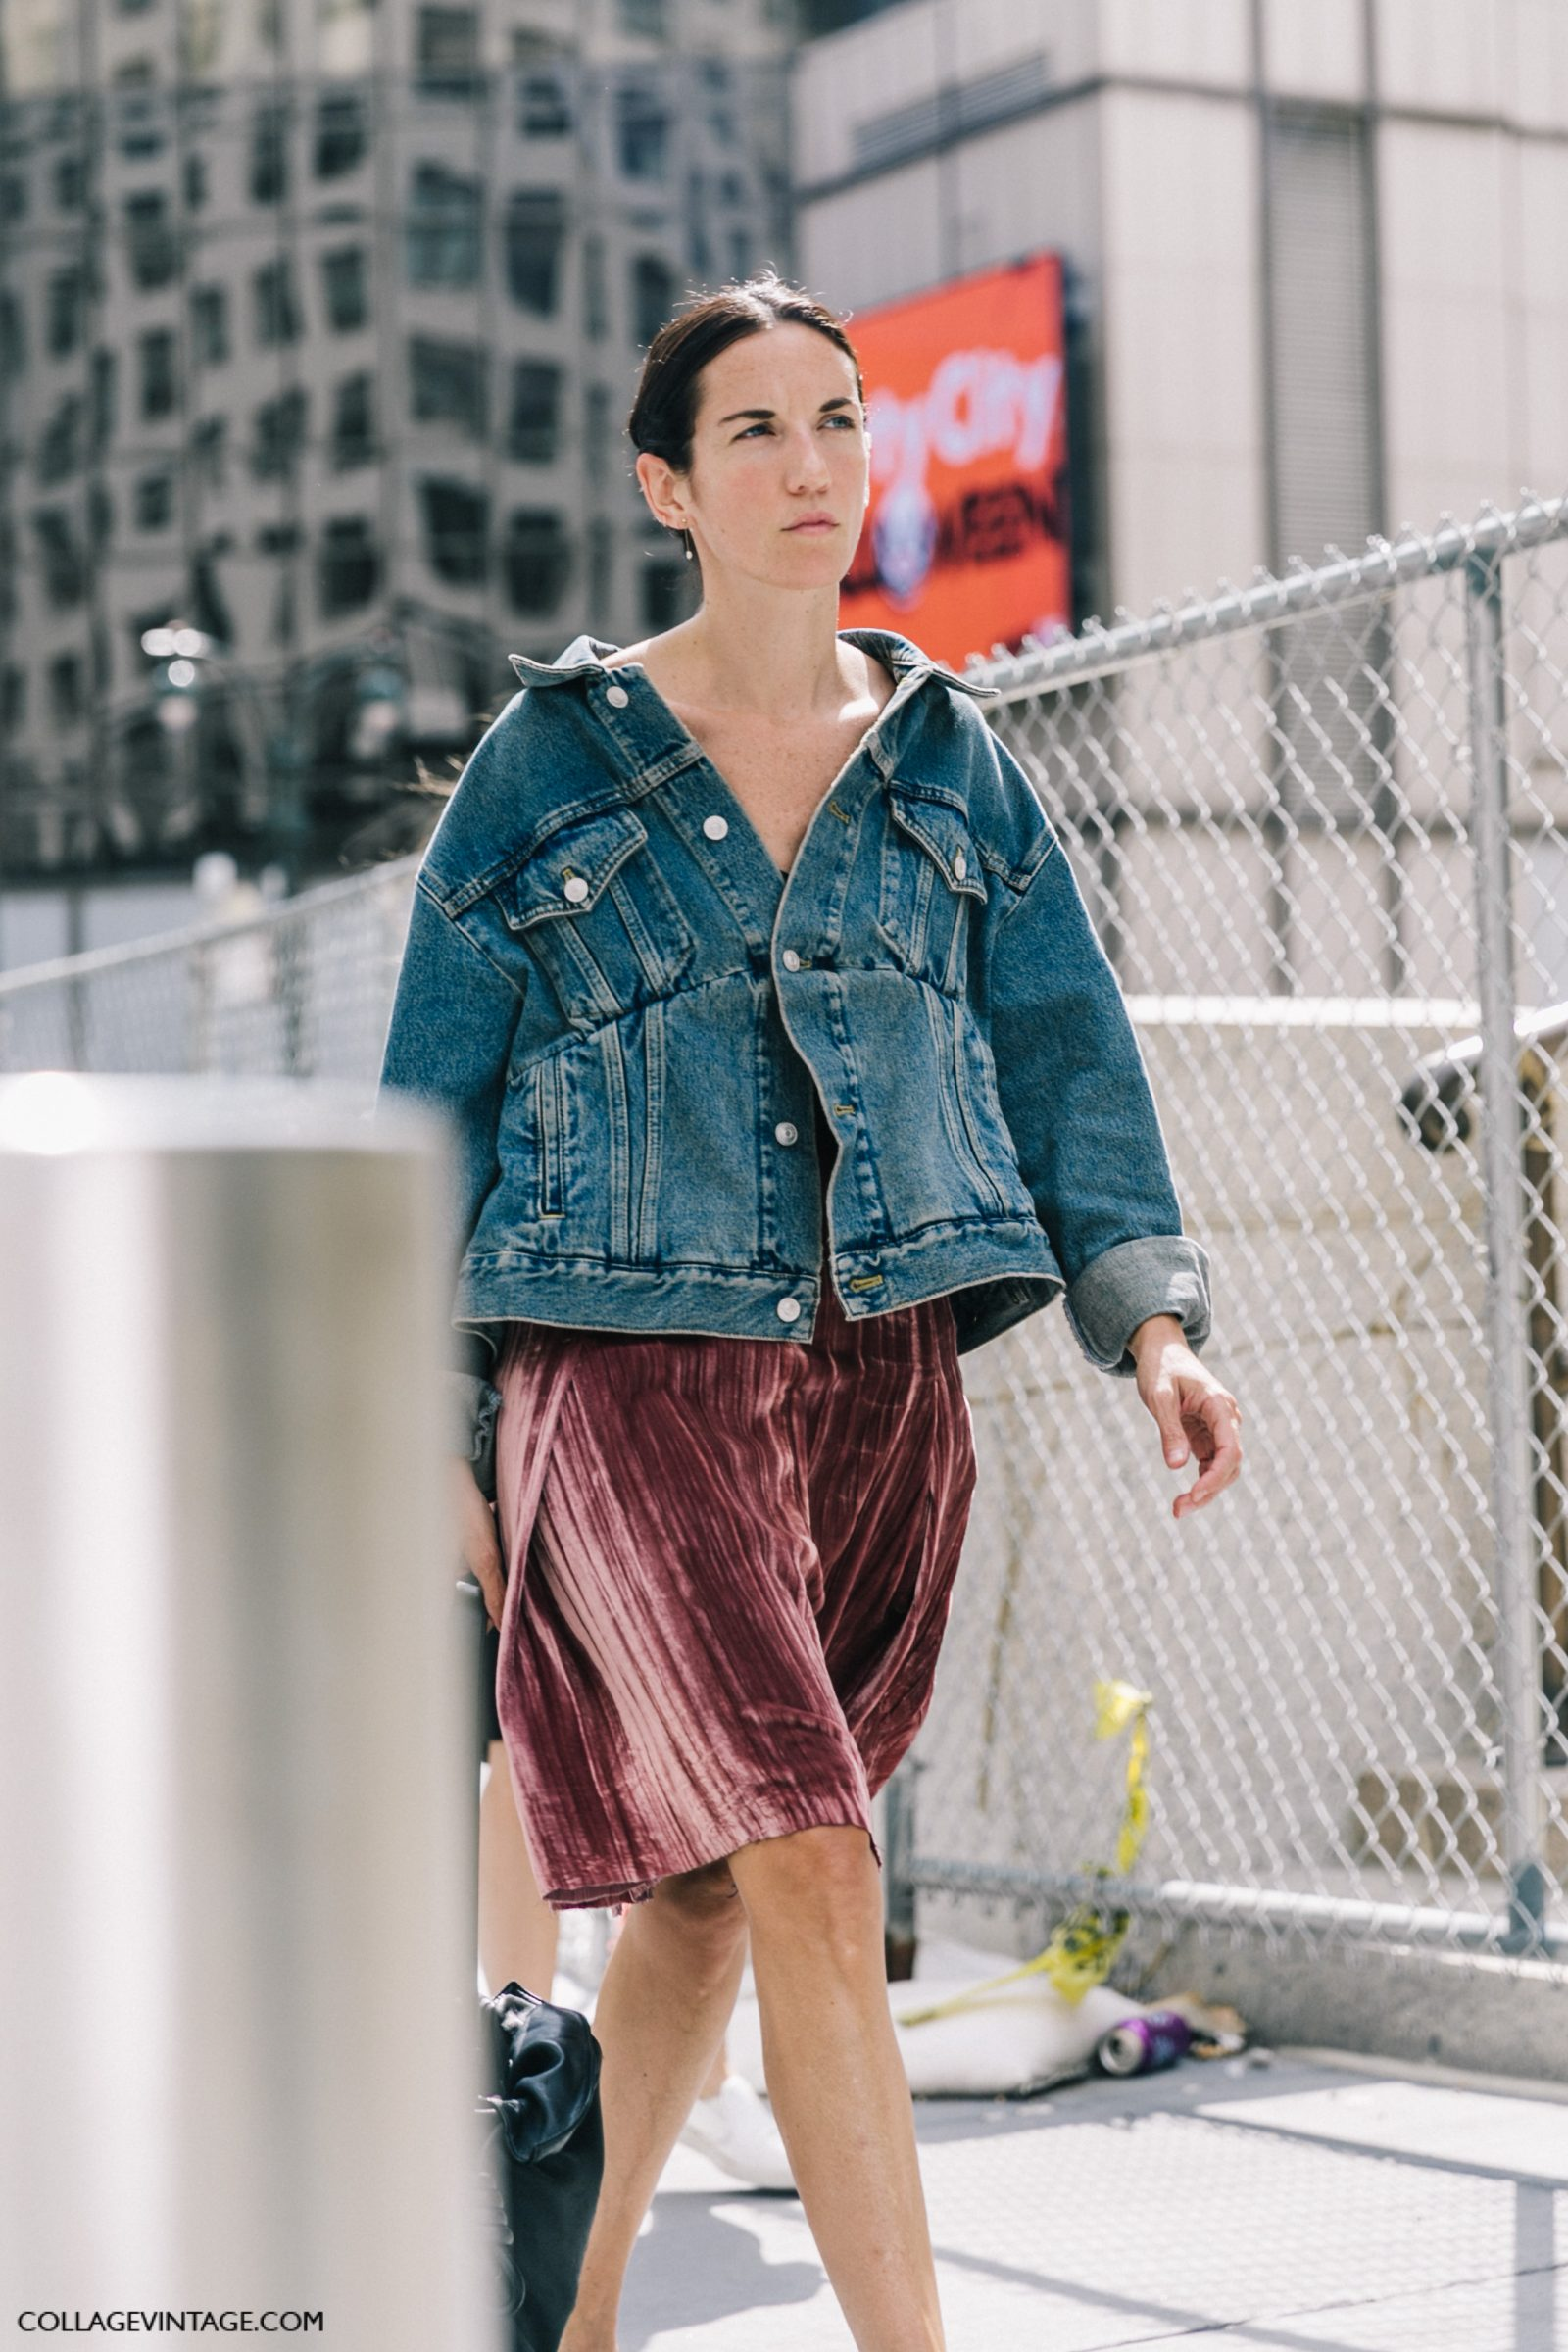 nyfw-new_york_fashion_week_ss17-street_style-outfits-collage_vintage-vintage-tome-14